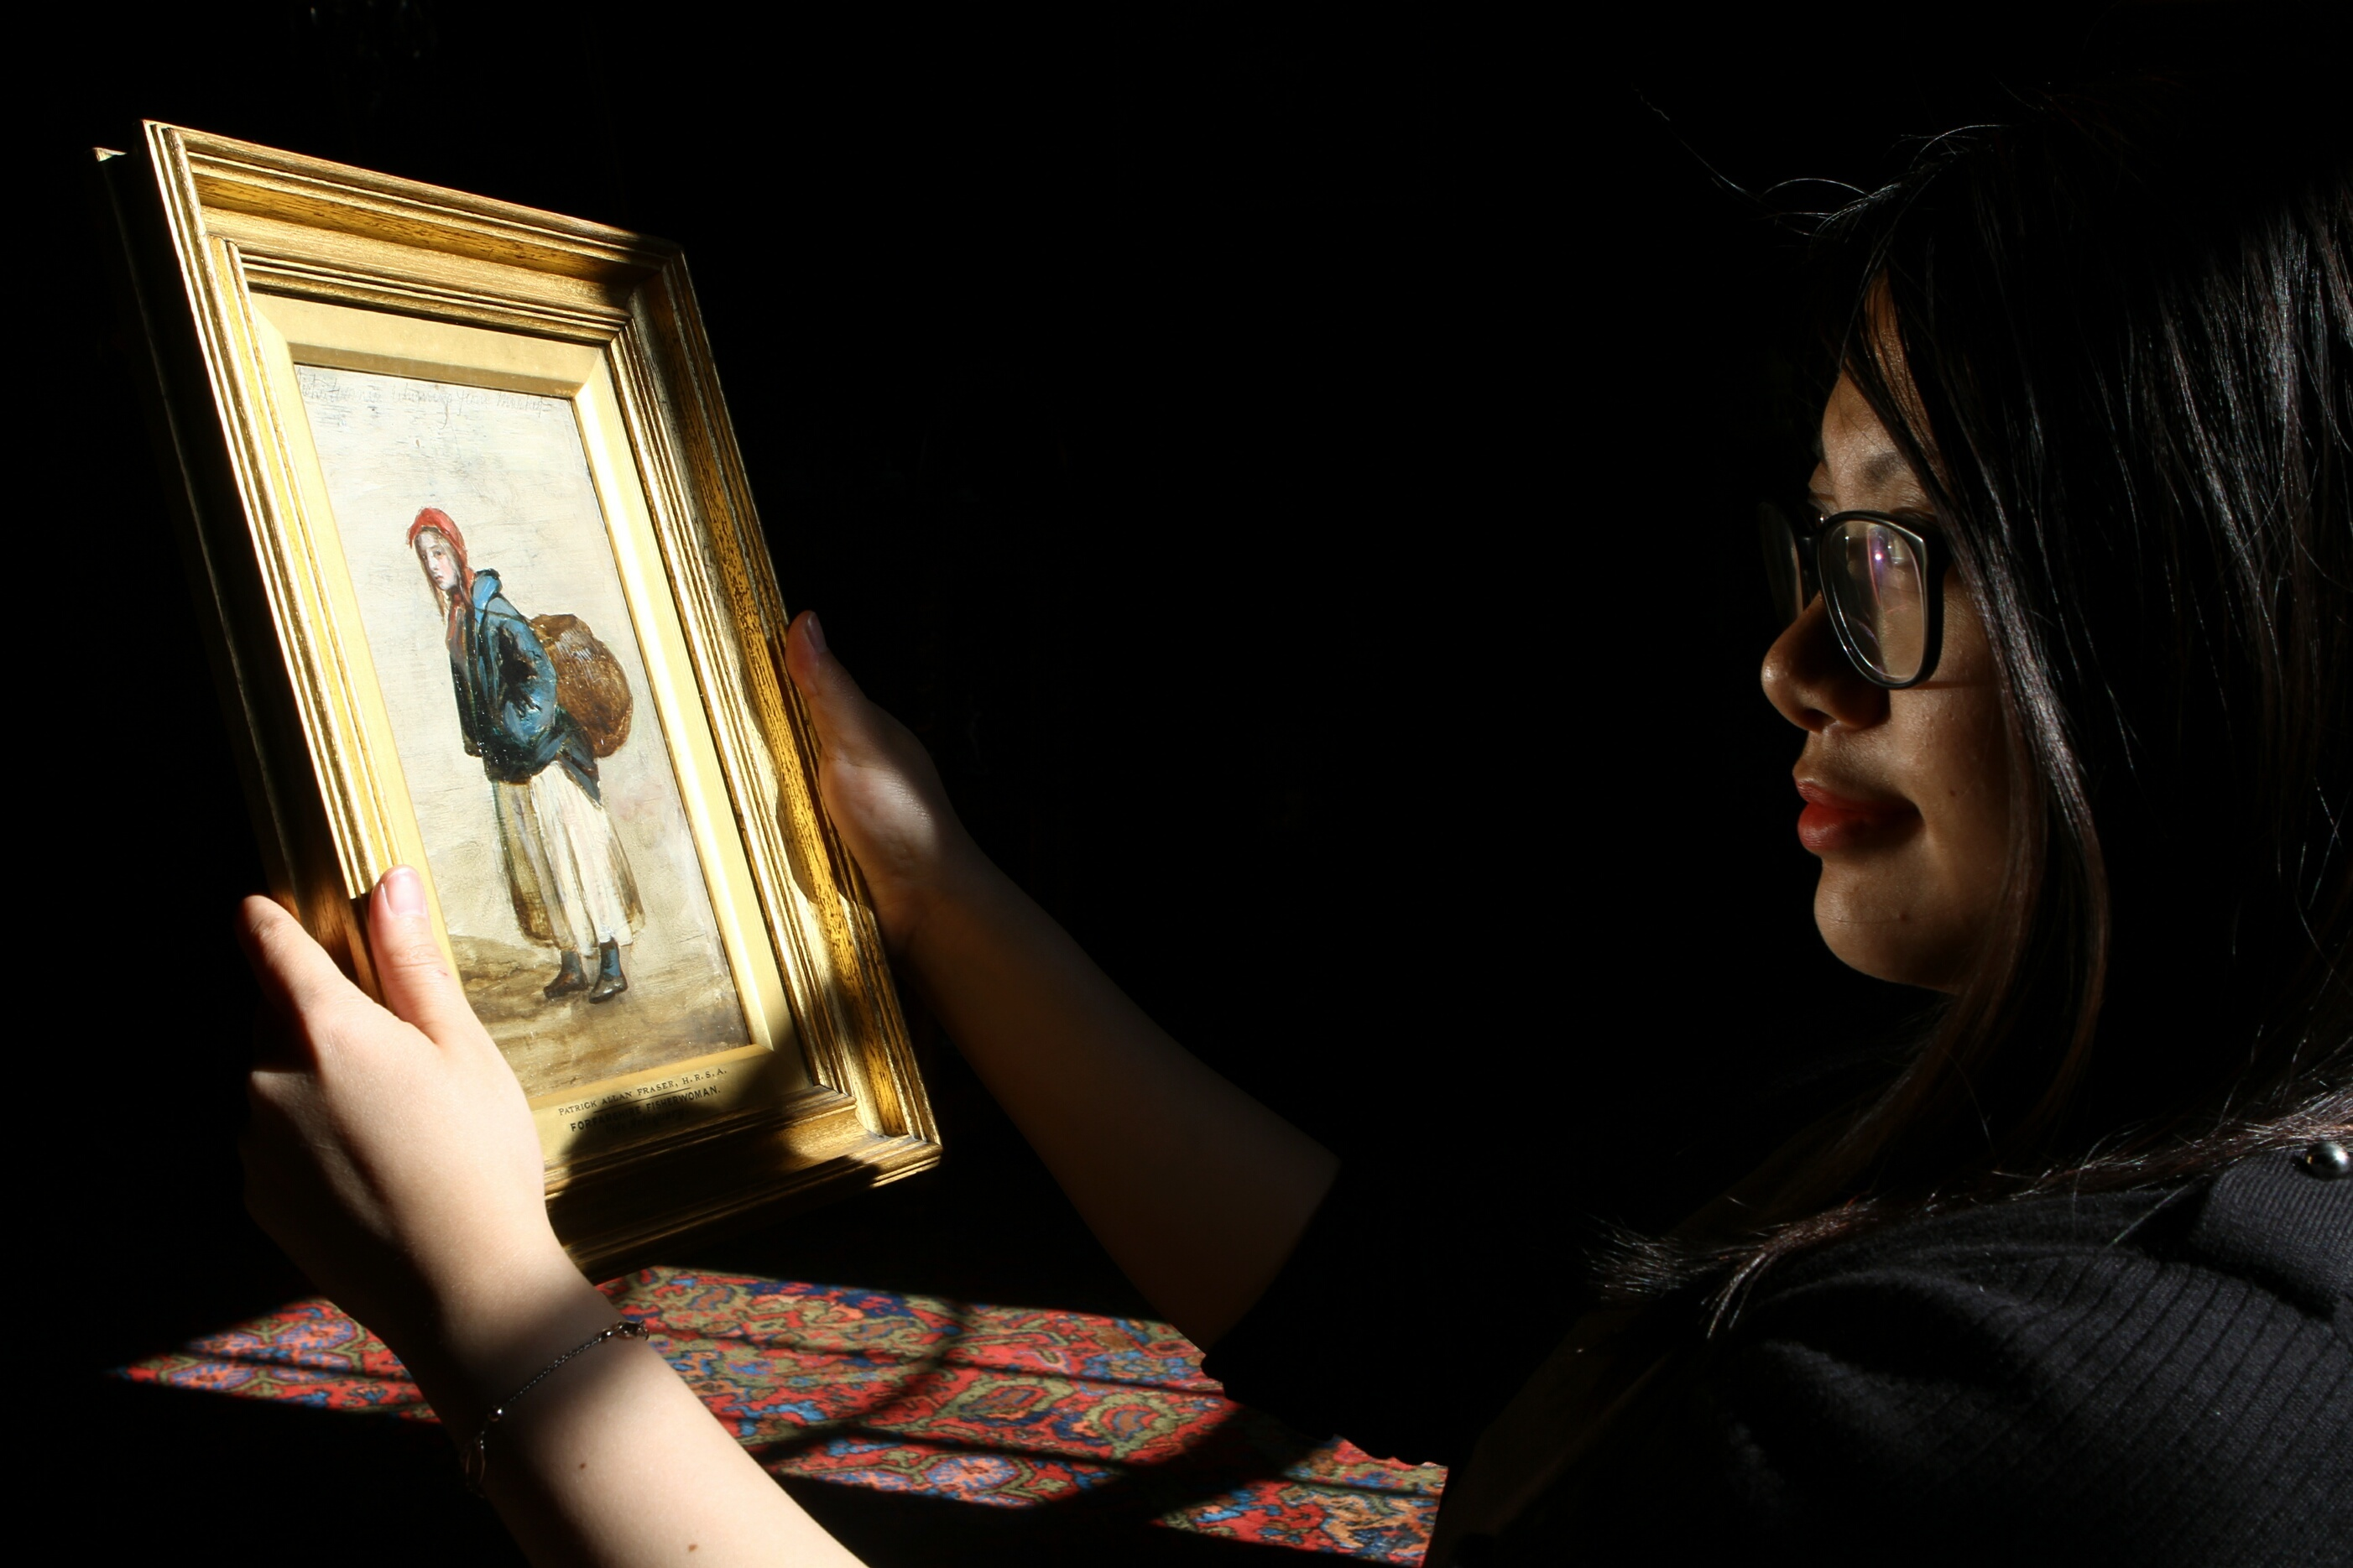 Programme trainee Morgana Ho with one of the Patrick Allan Fraser paintings, Forfarshire Fisherwoman.